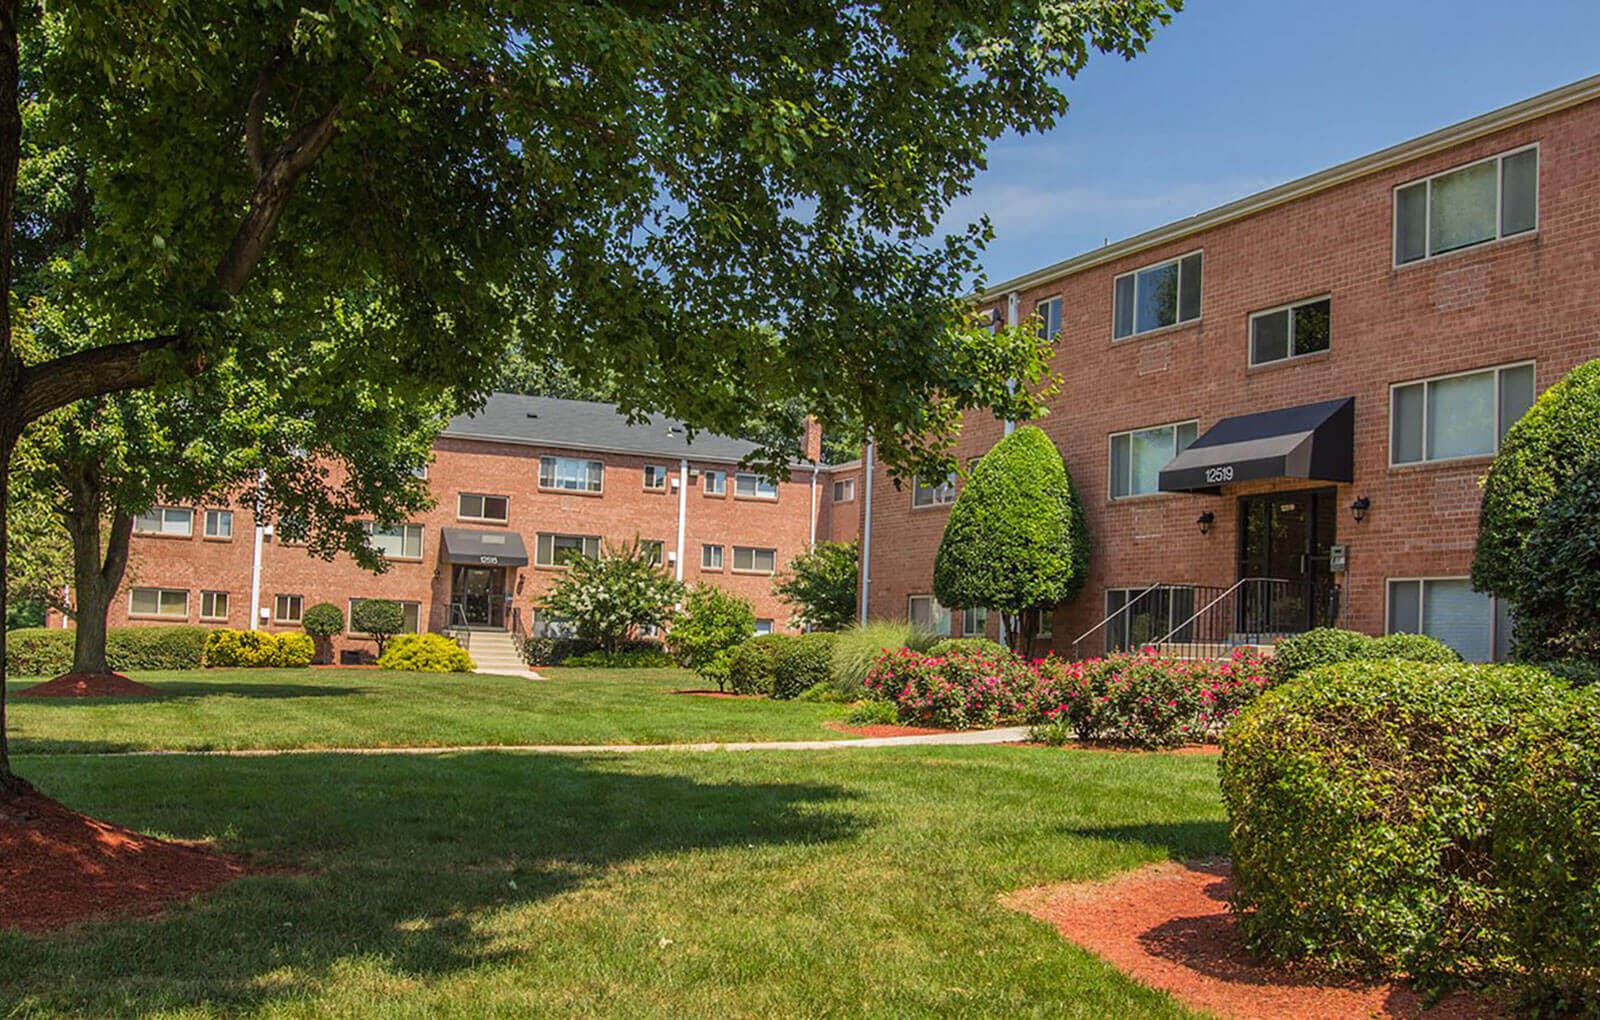 Lush Green Outdoor at Woodlee Terrace Apartments, Virginia